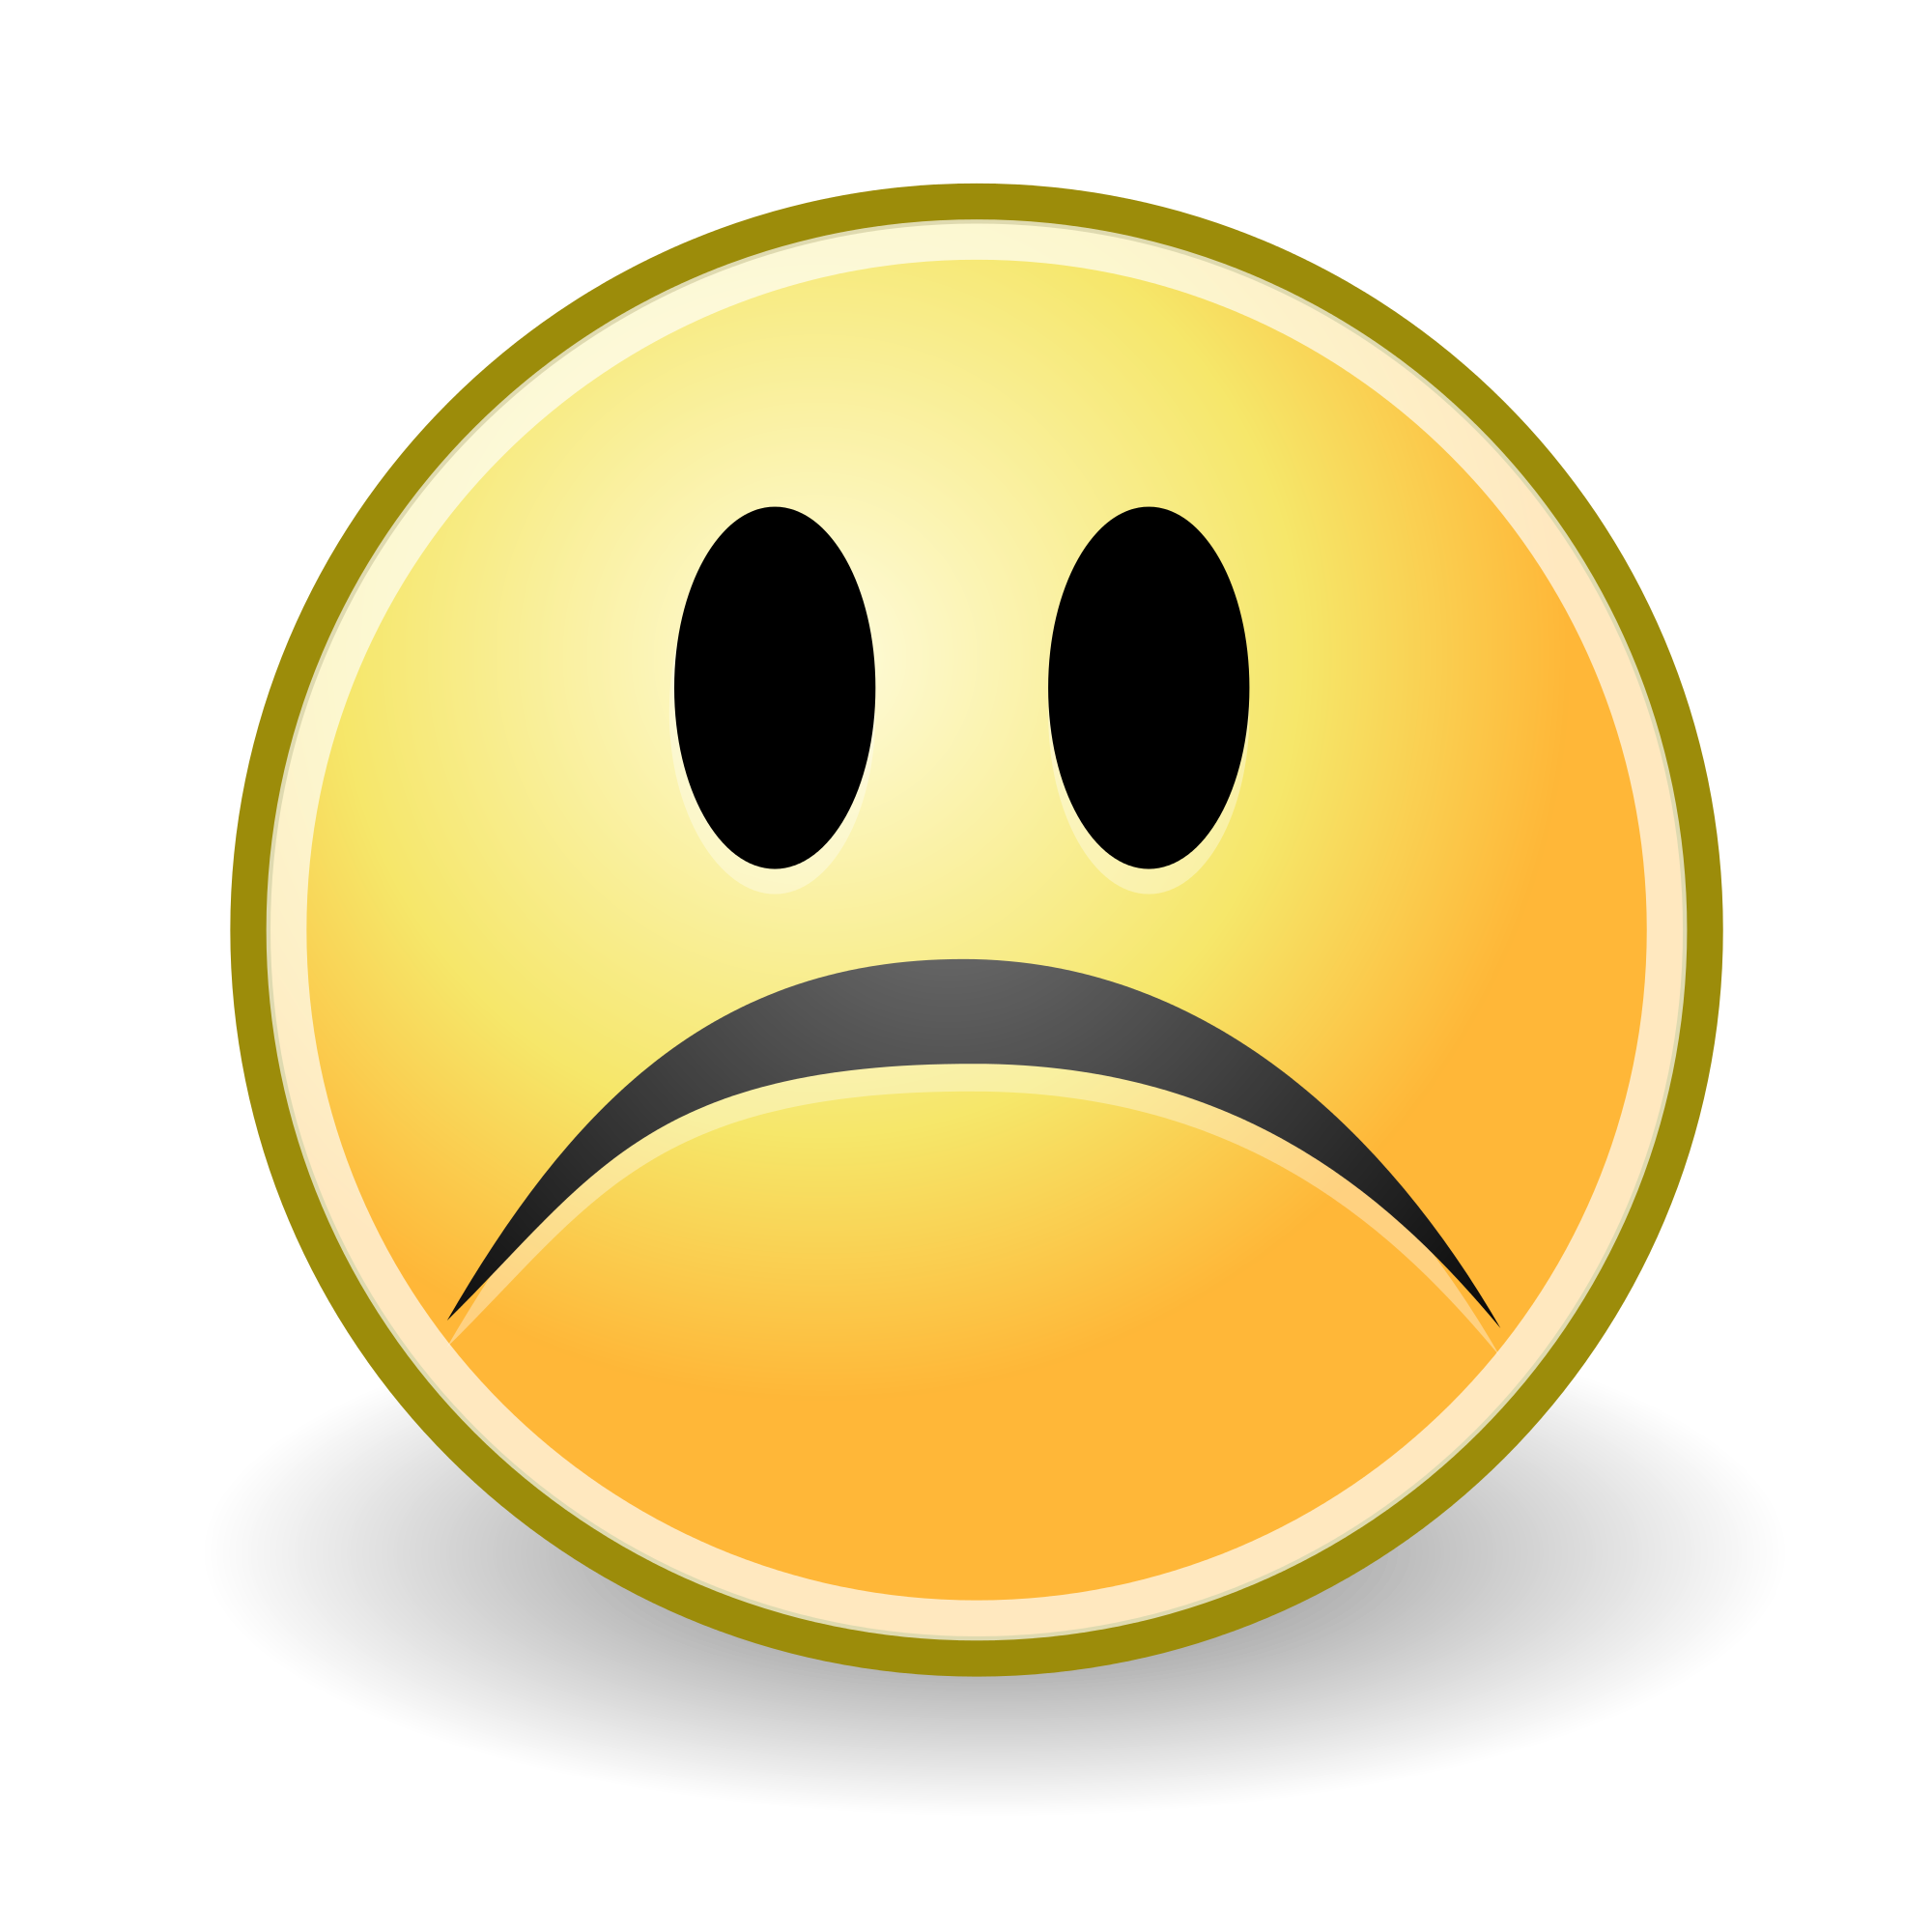 Bad clipart sad. File face svg wikimedia